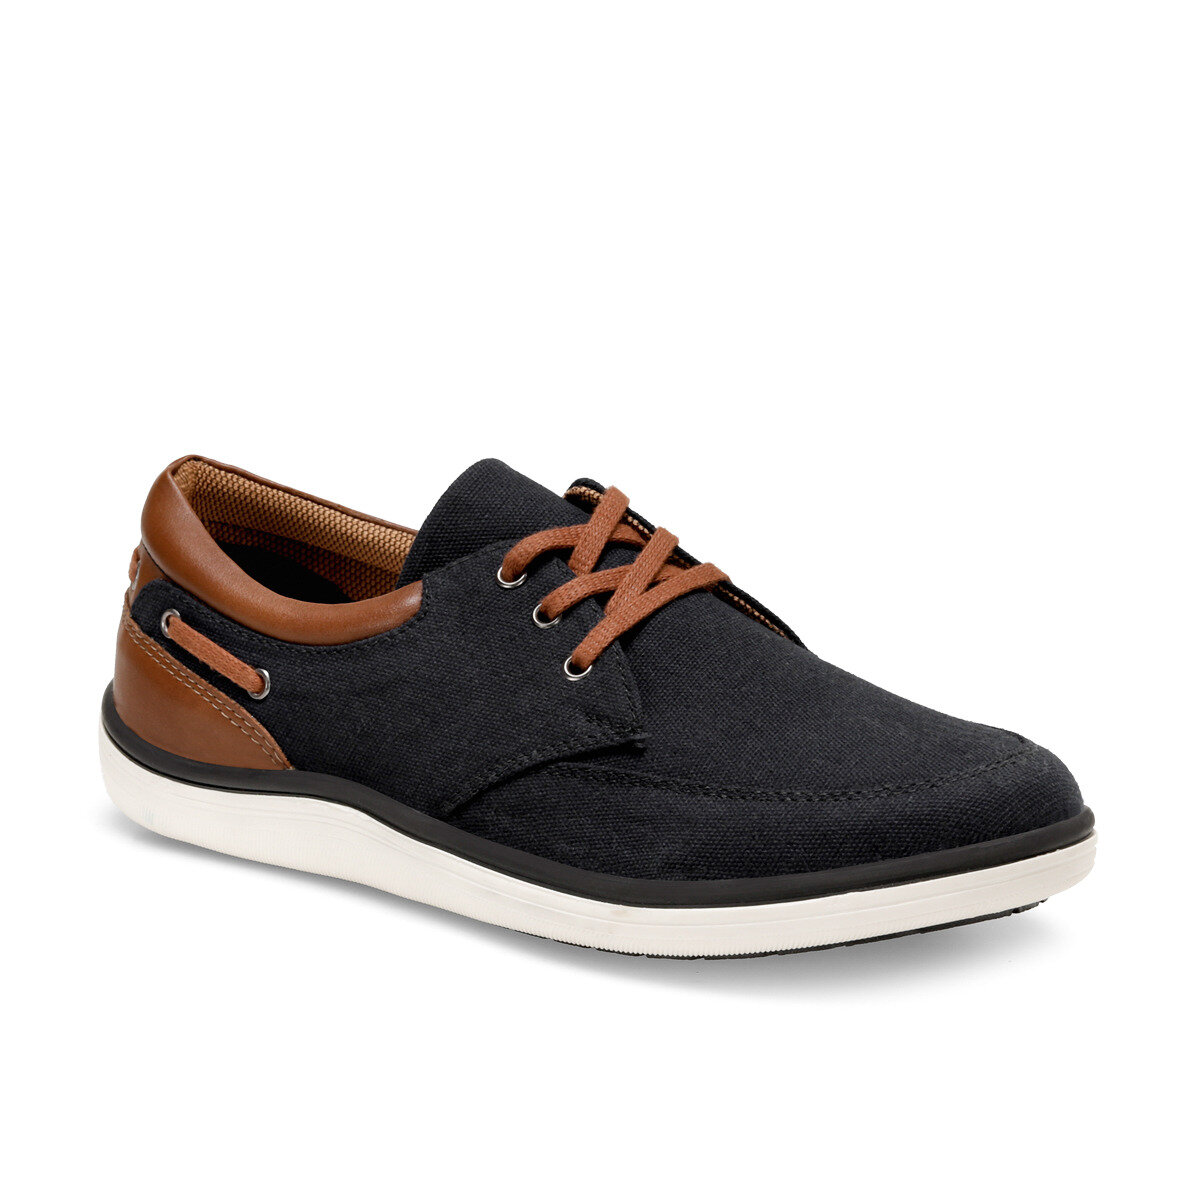 FLO LG-02 C Anthracite Men Shoes Oxide